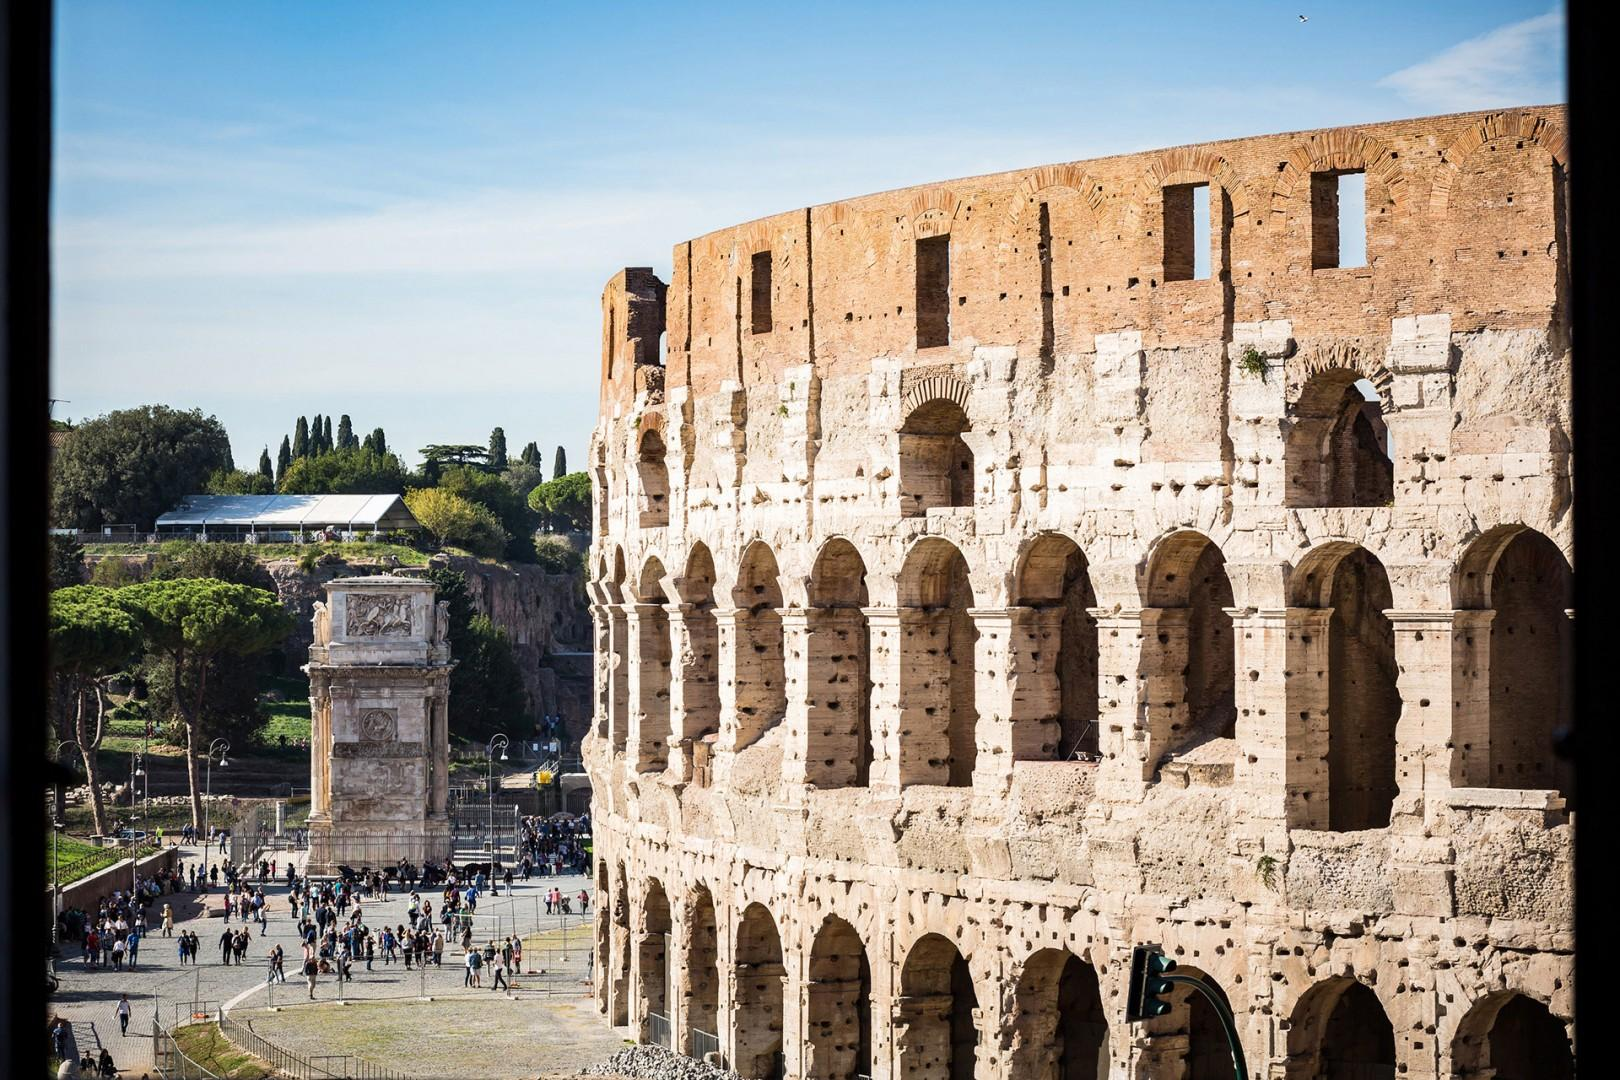 Another spectacular view of the Coliseum.